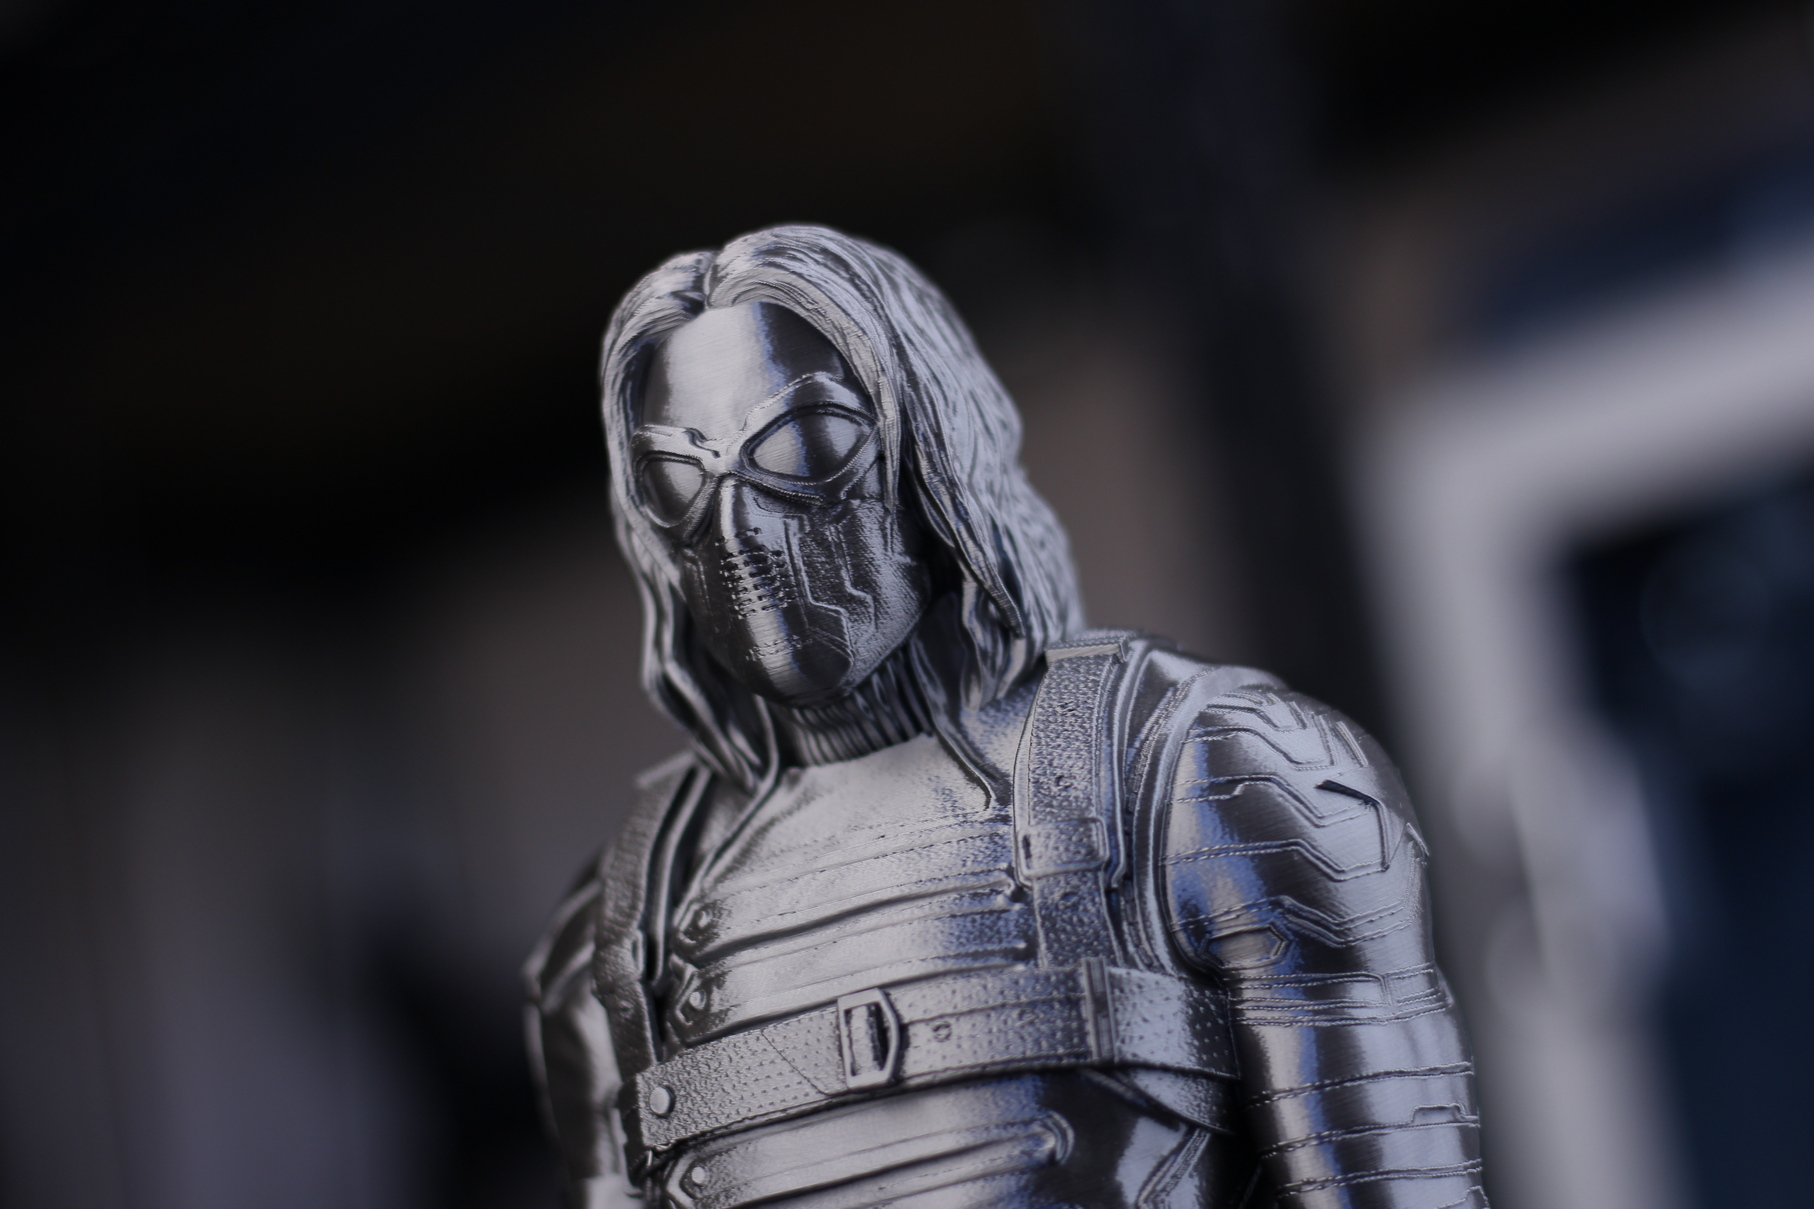 Masked-Winter-Soldier-from-Fotis-Mint-on-Creality-Sermoon-D1-2